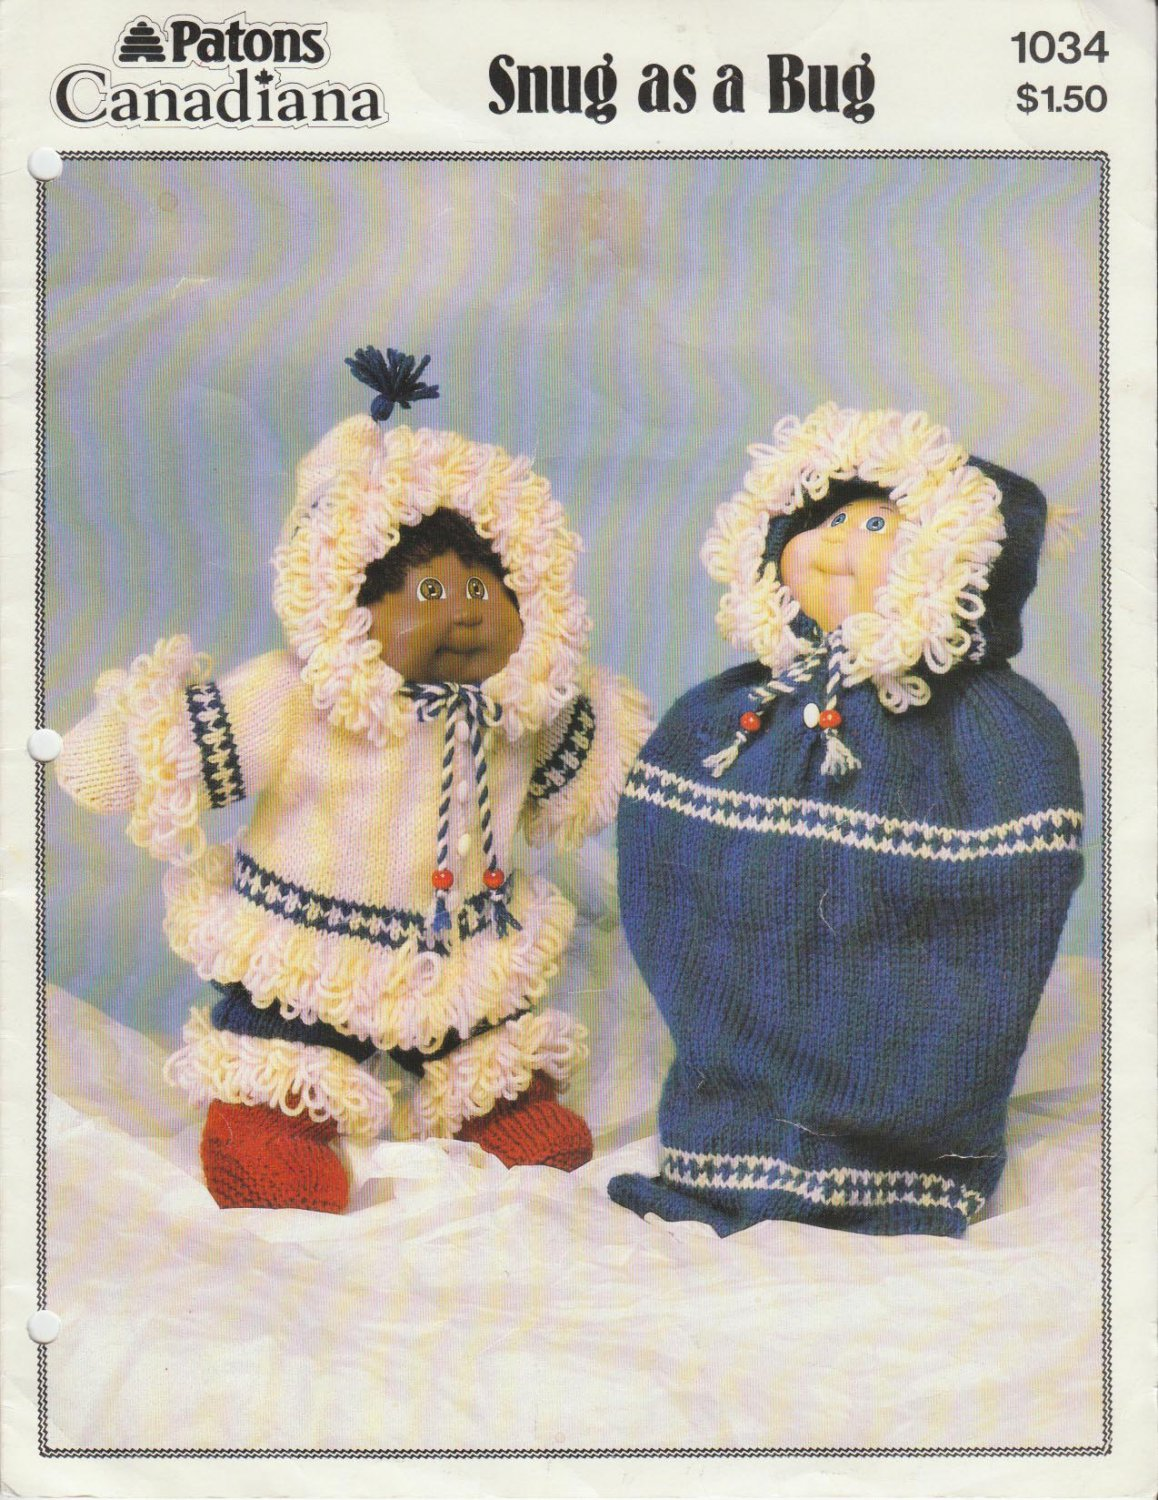 Patons 1985 Doll Parka Outfit Knitting Pattern #1034 Snug as a Bug